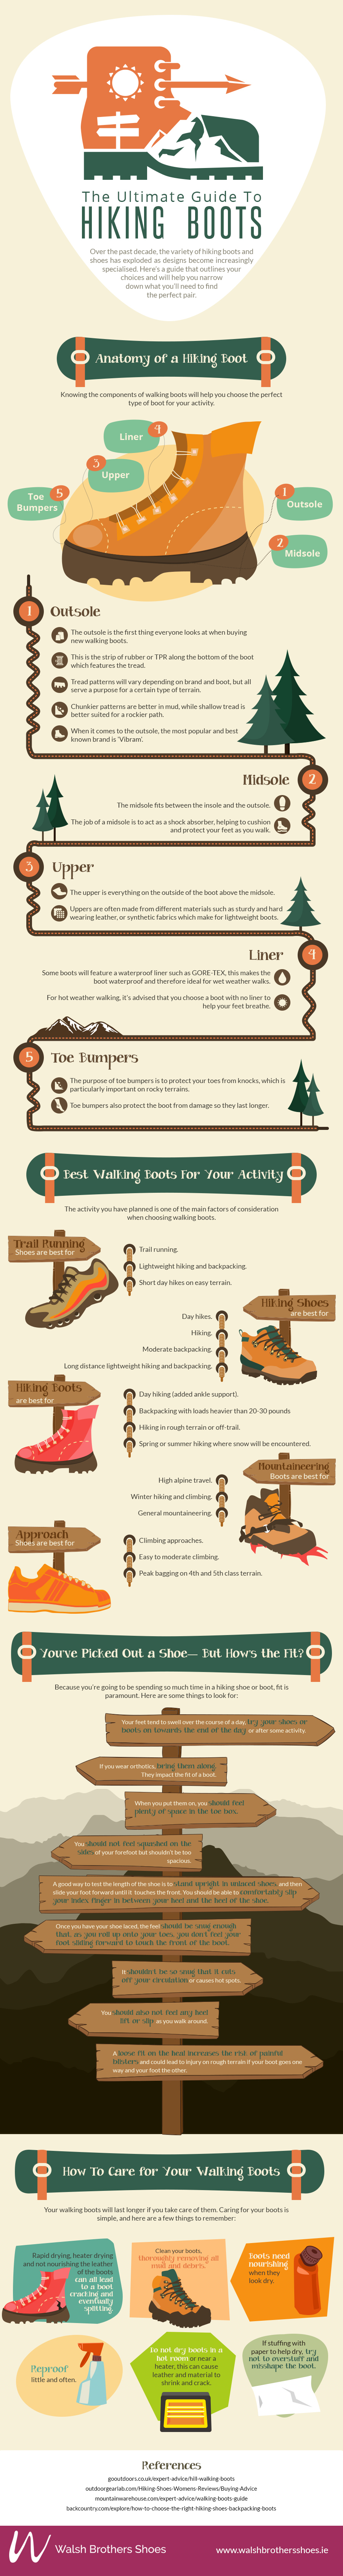 The Ultimate Guide To Hiking Boots